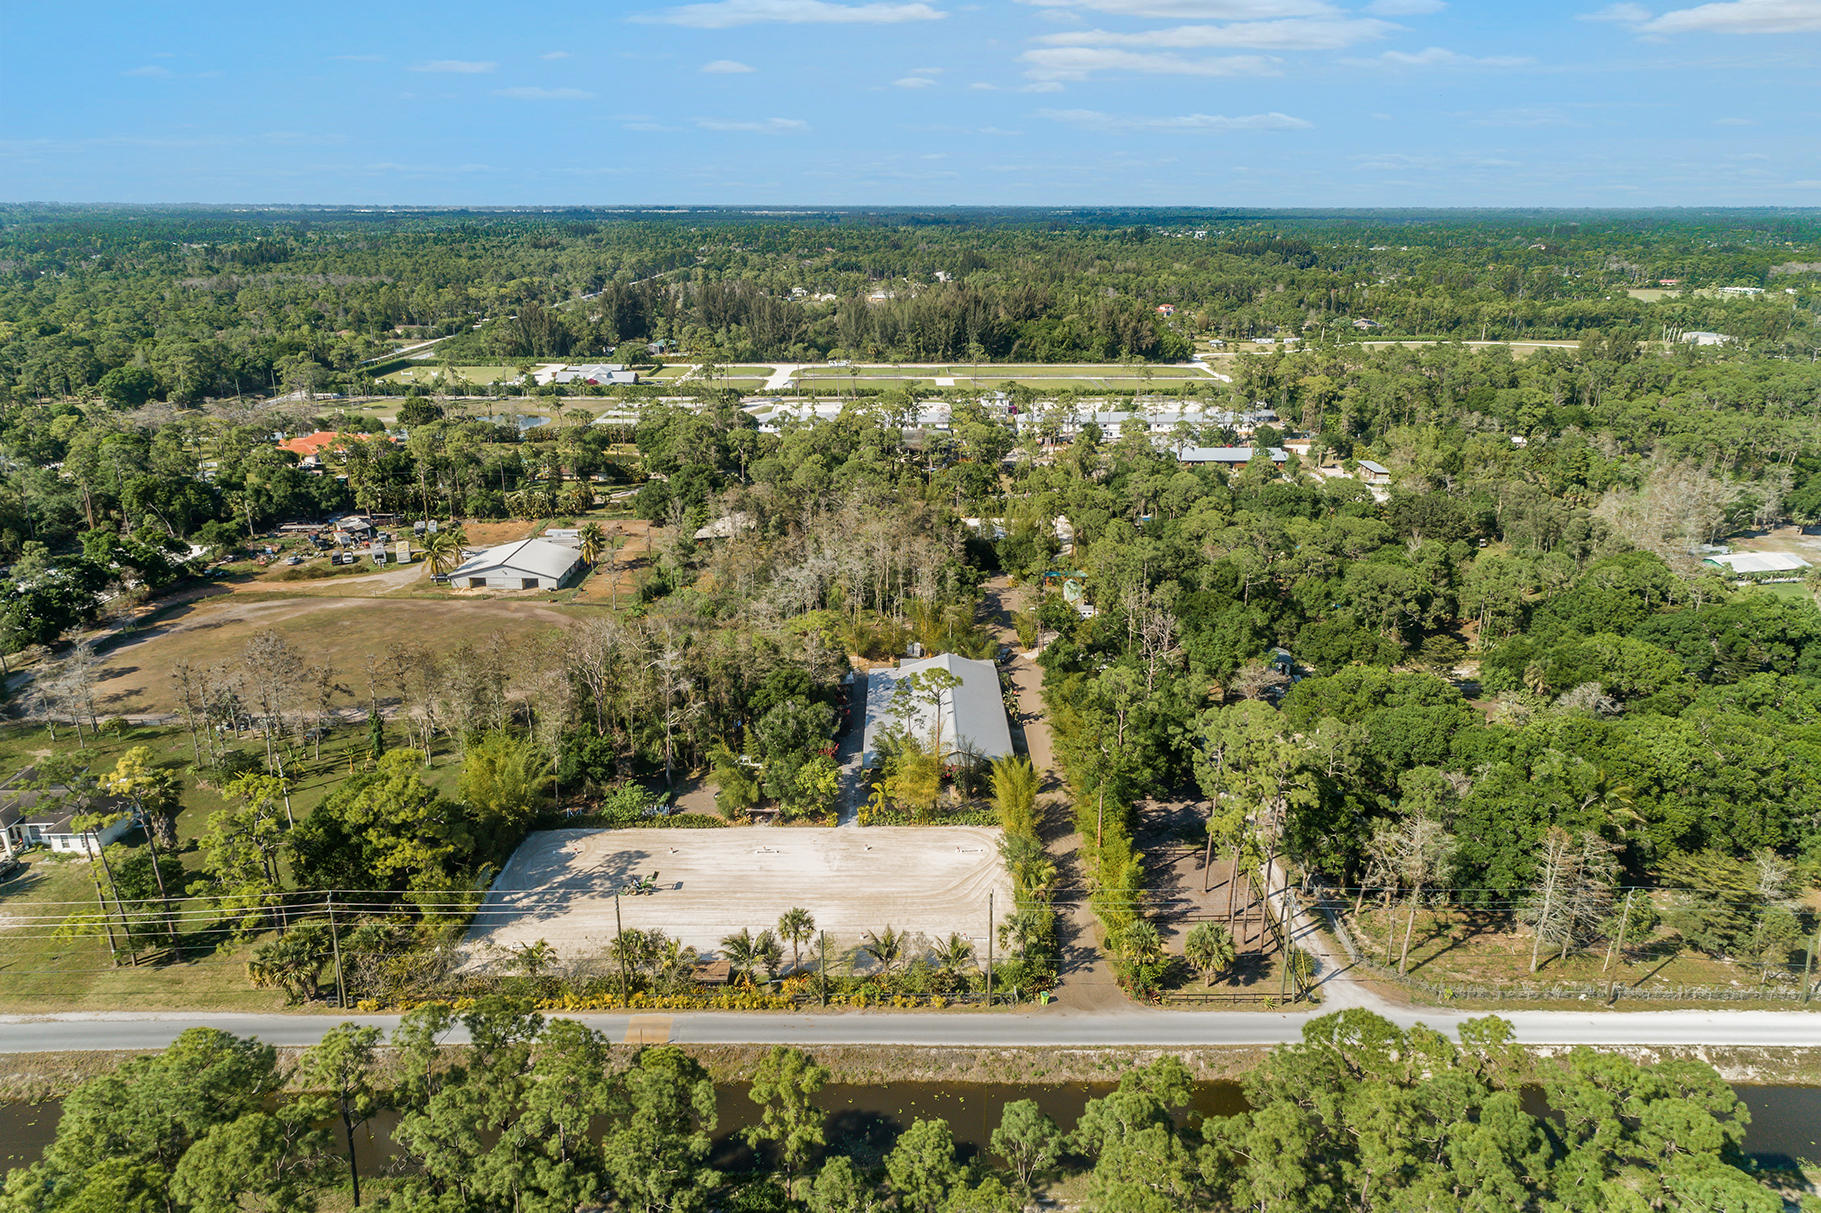 Loxahatchee Groves, Florida 33470, 3 Bedrooms Bedrooms, ,2 BathroomsBathrooms,Residential,For Sale,Collecting Canal,RX-10607866